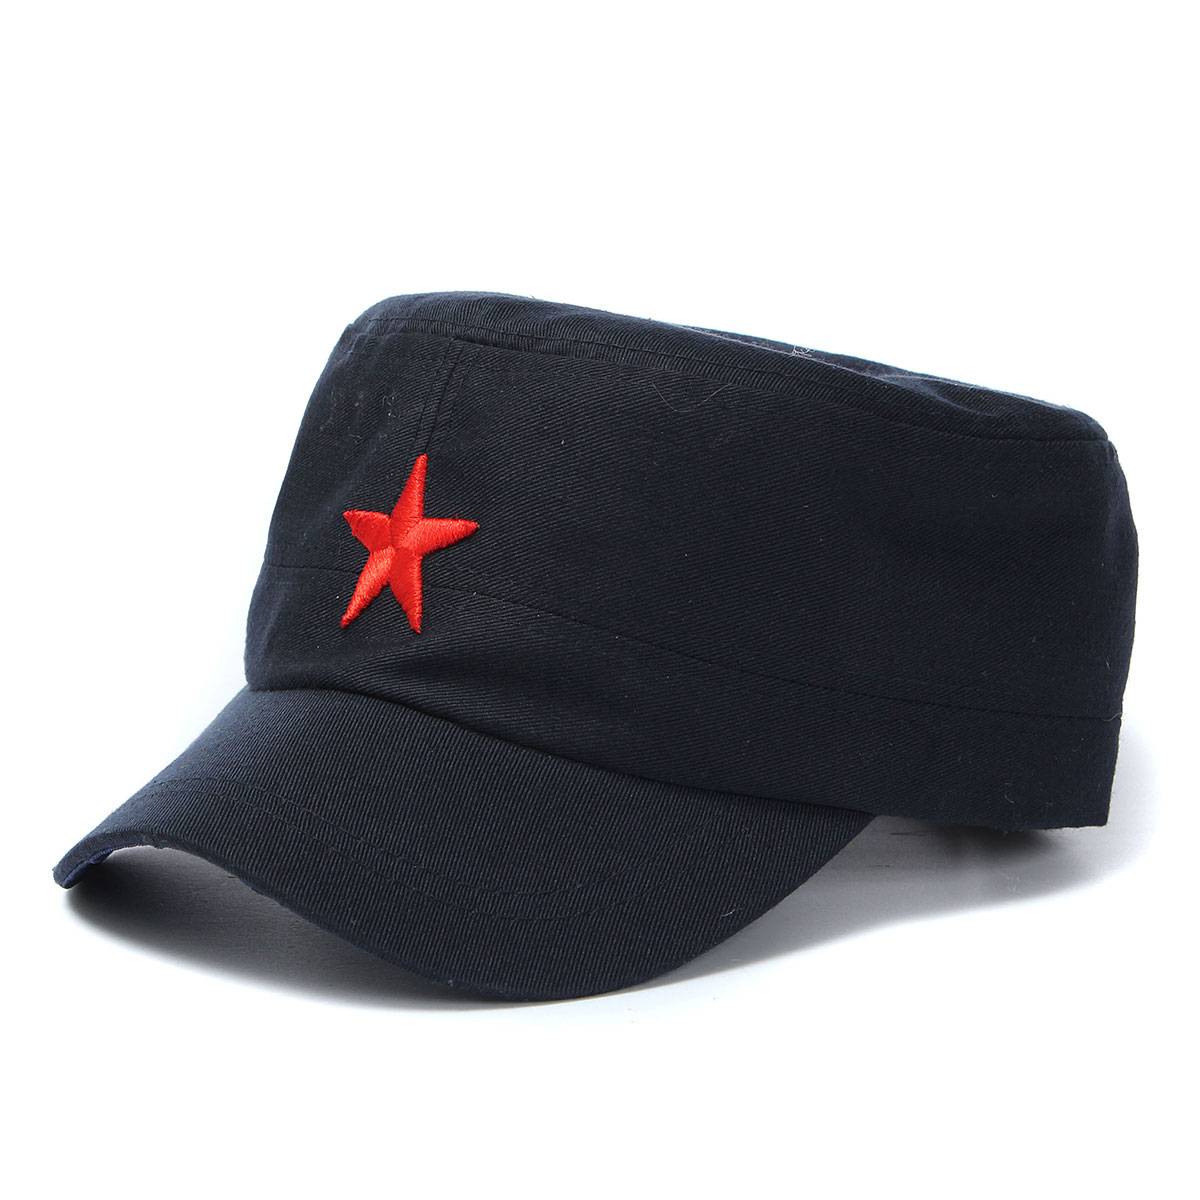 77834597 unisex red star cotton army cadet military cap at Banggood